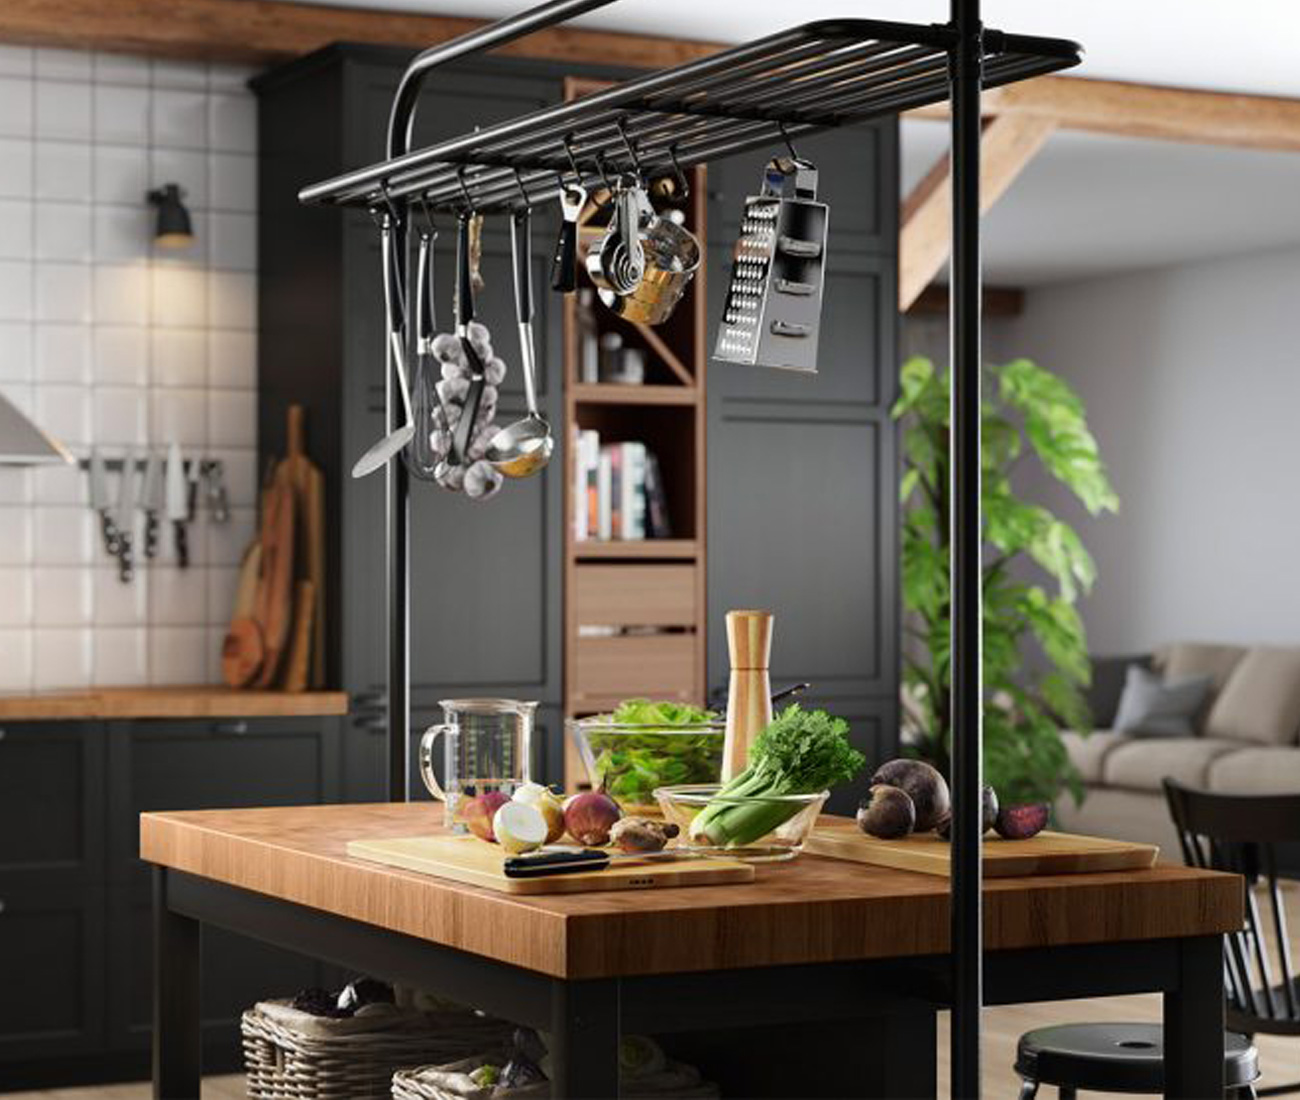 Ikea Kitchen Catalogue 5 Covetable Looks For Small Spaces From Ikea 39s 2019